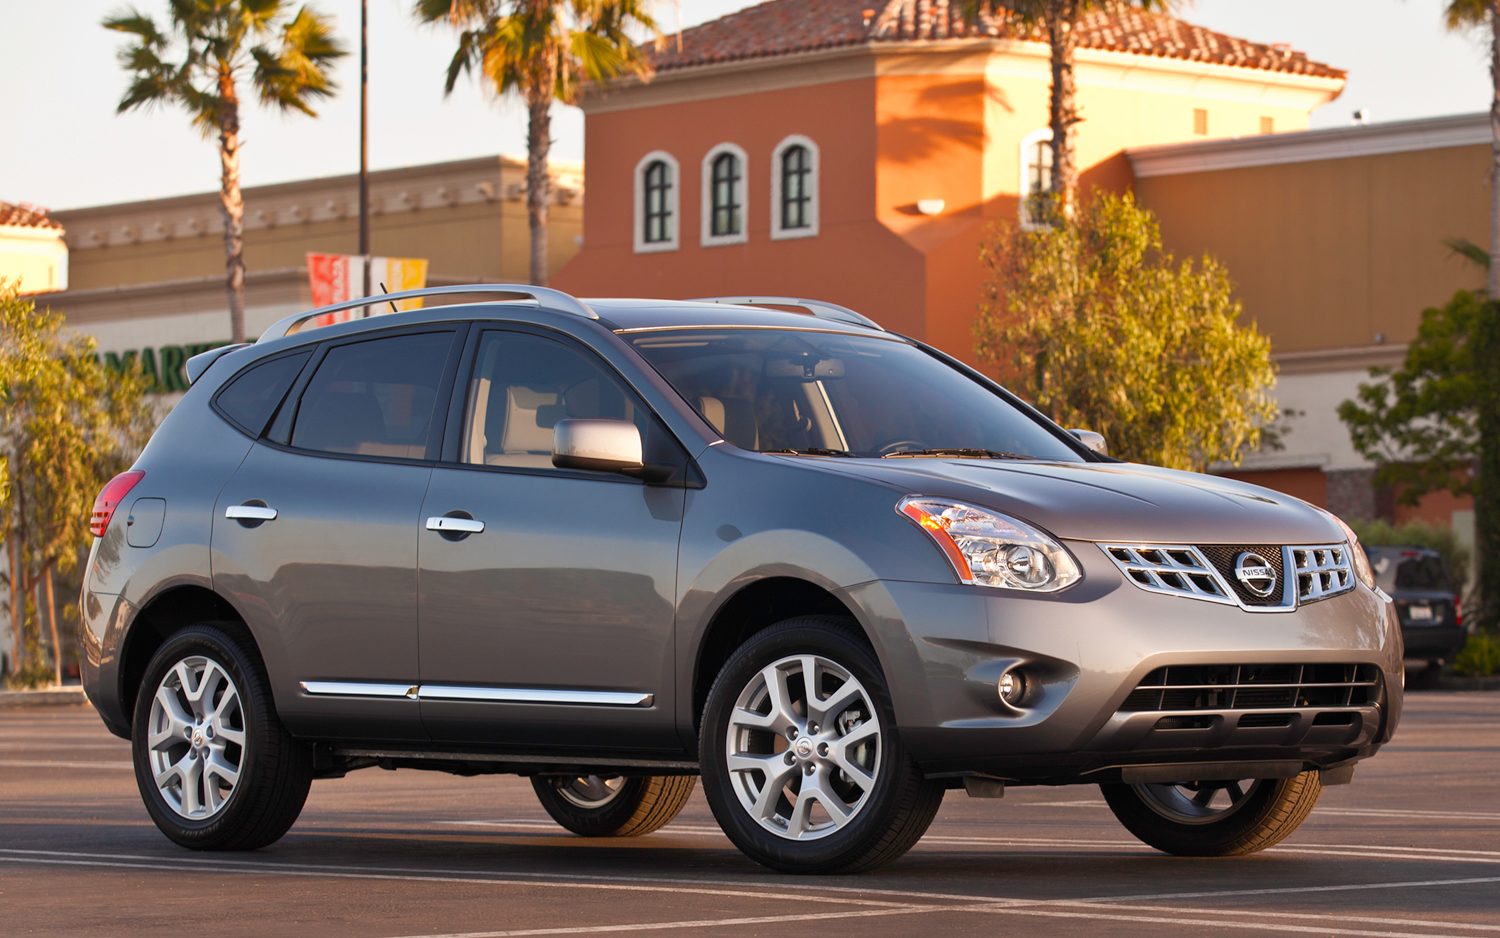 2012 Nissan Rogue Gets Slight Price Bump, Starts at $22,340 - Motor ...